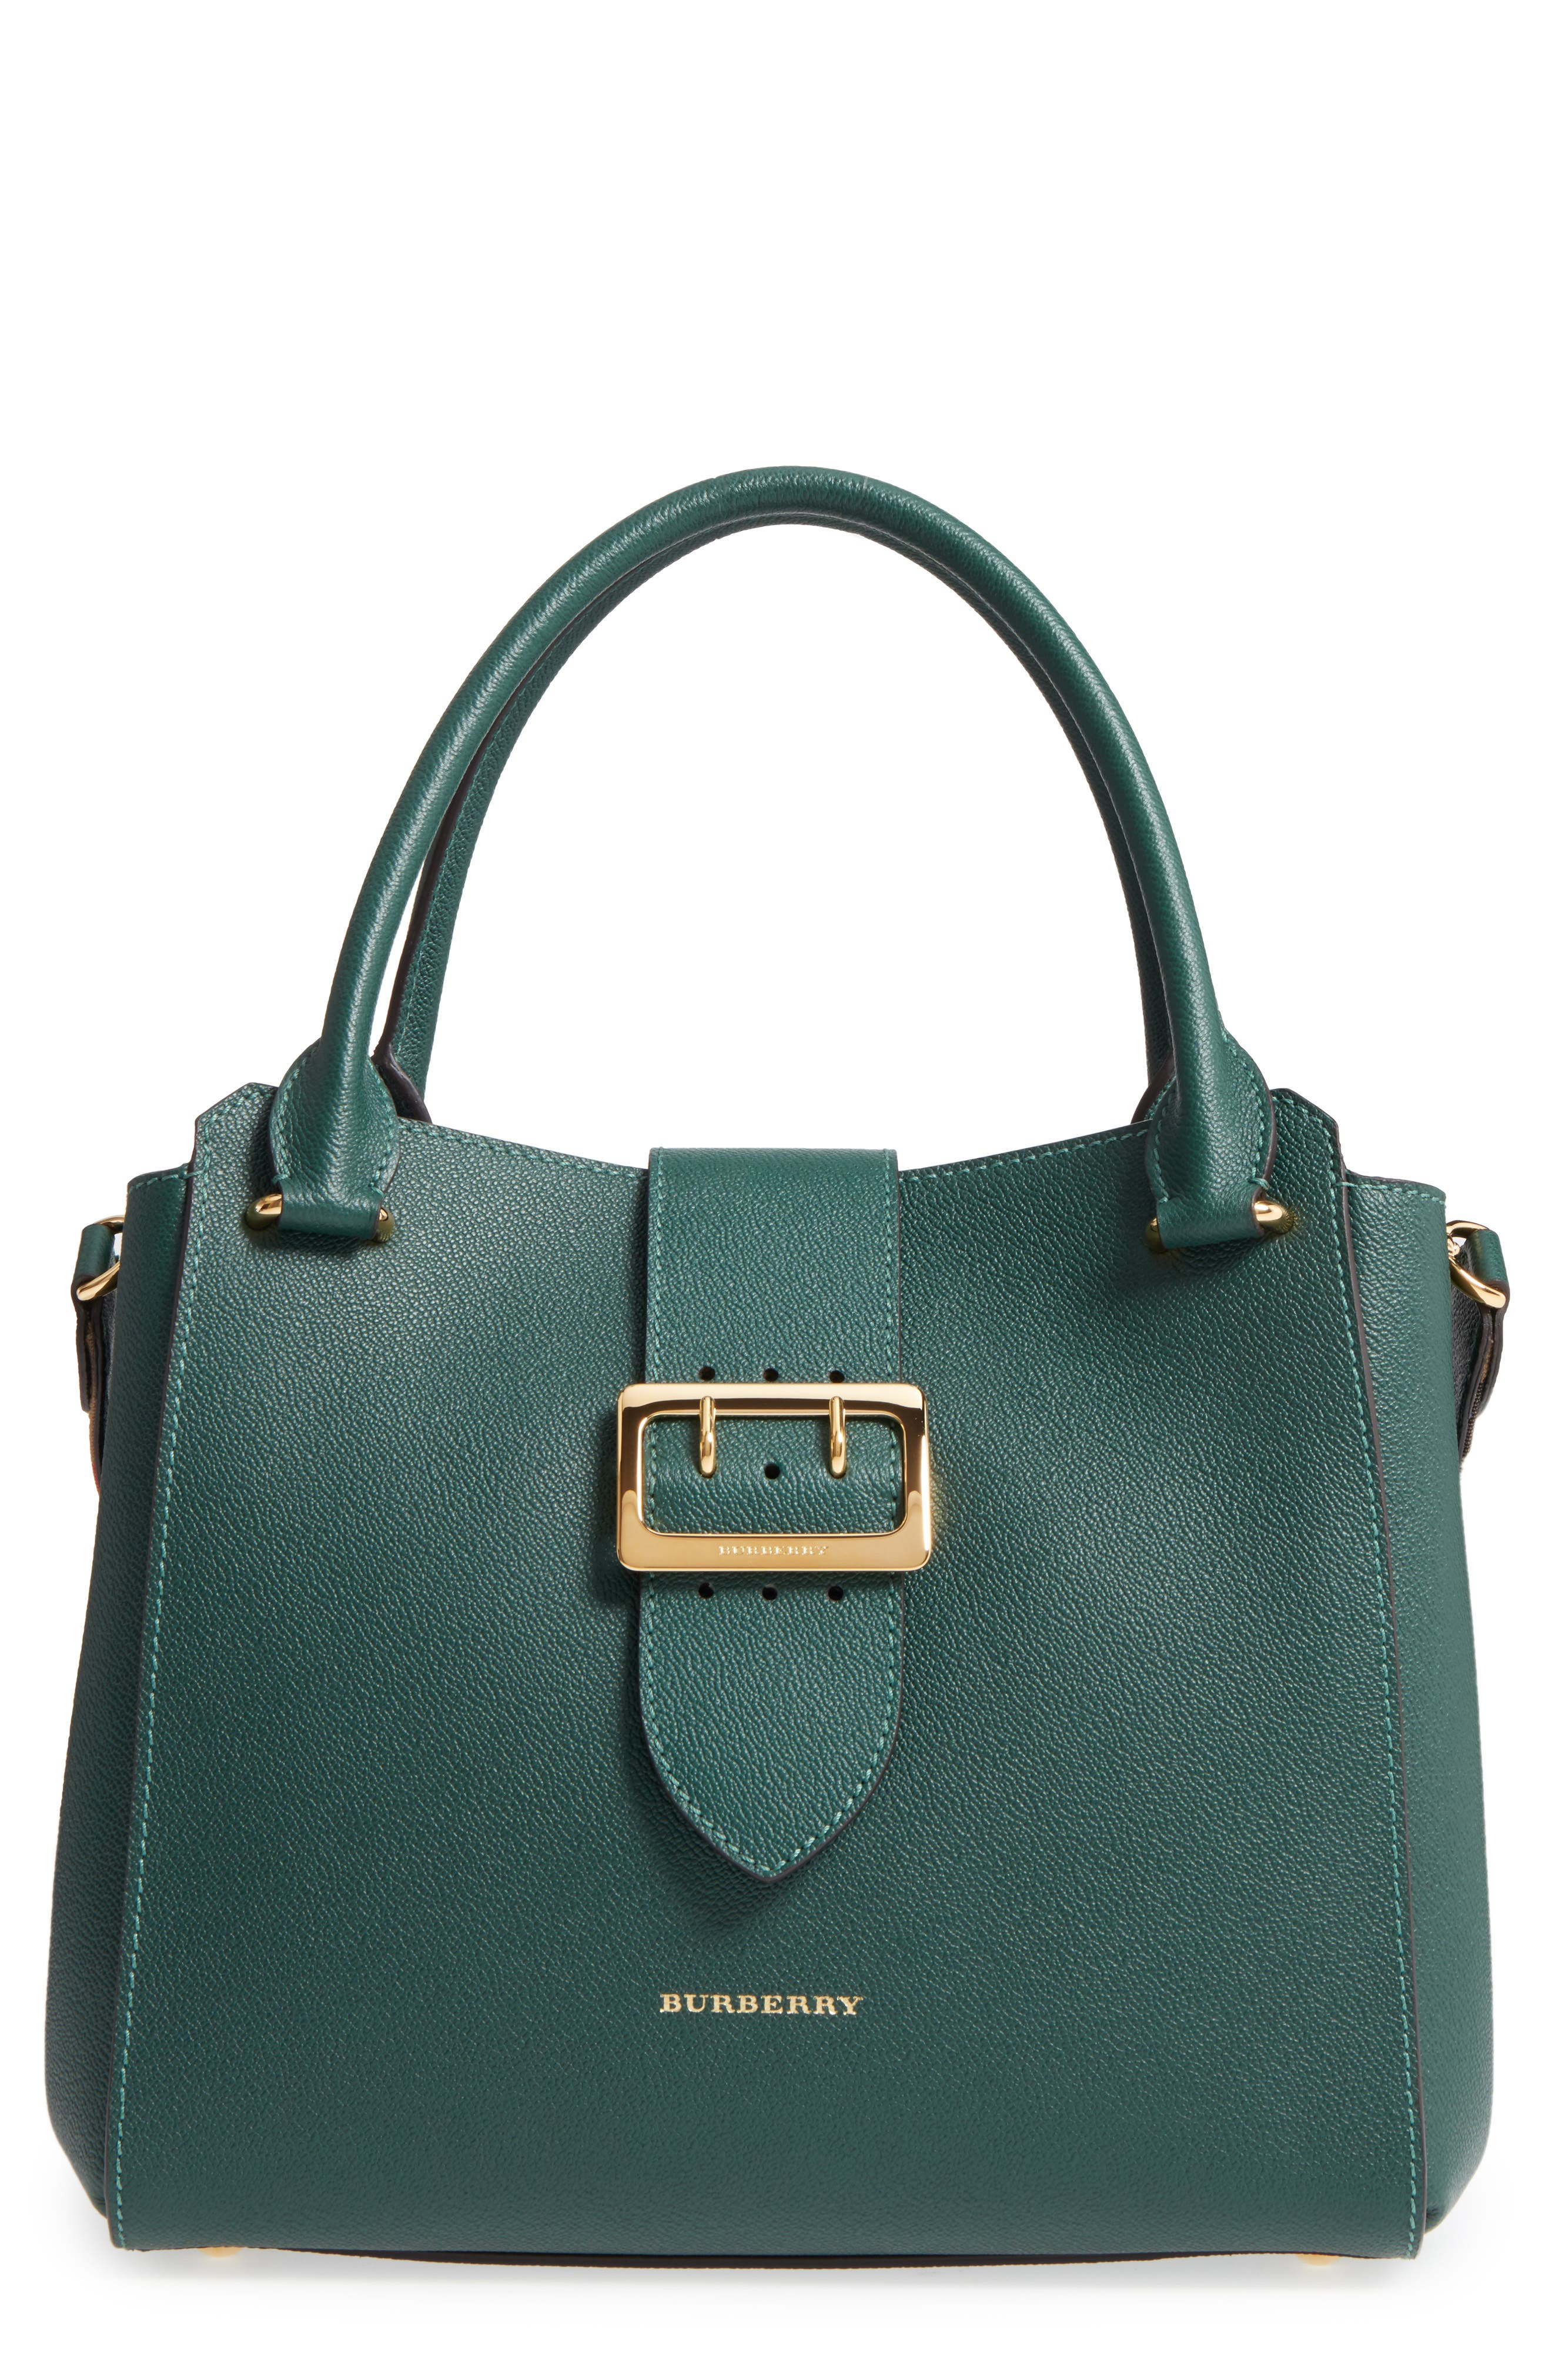 Medium Calfskin Leather Buckle Tote,                             Main thumbnail 1, color,                             310